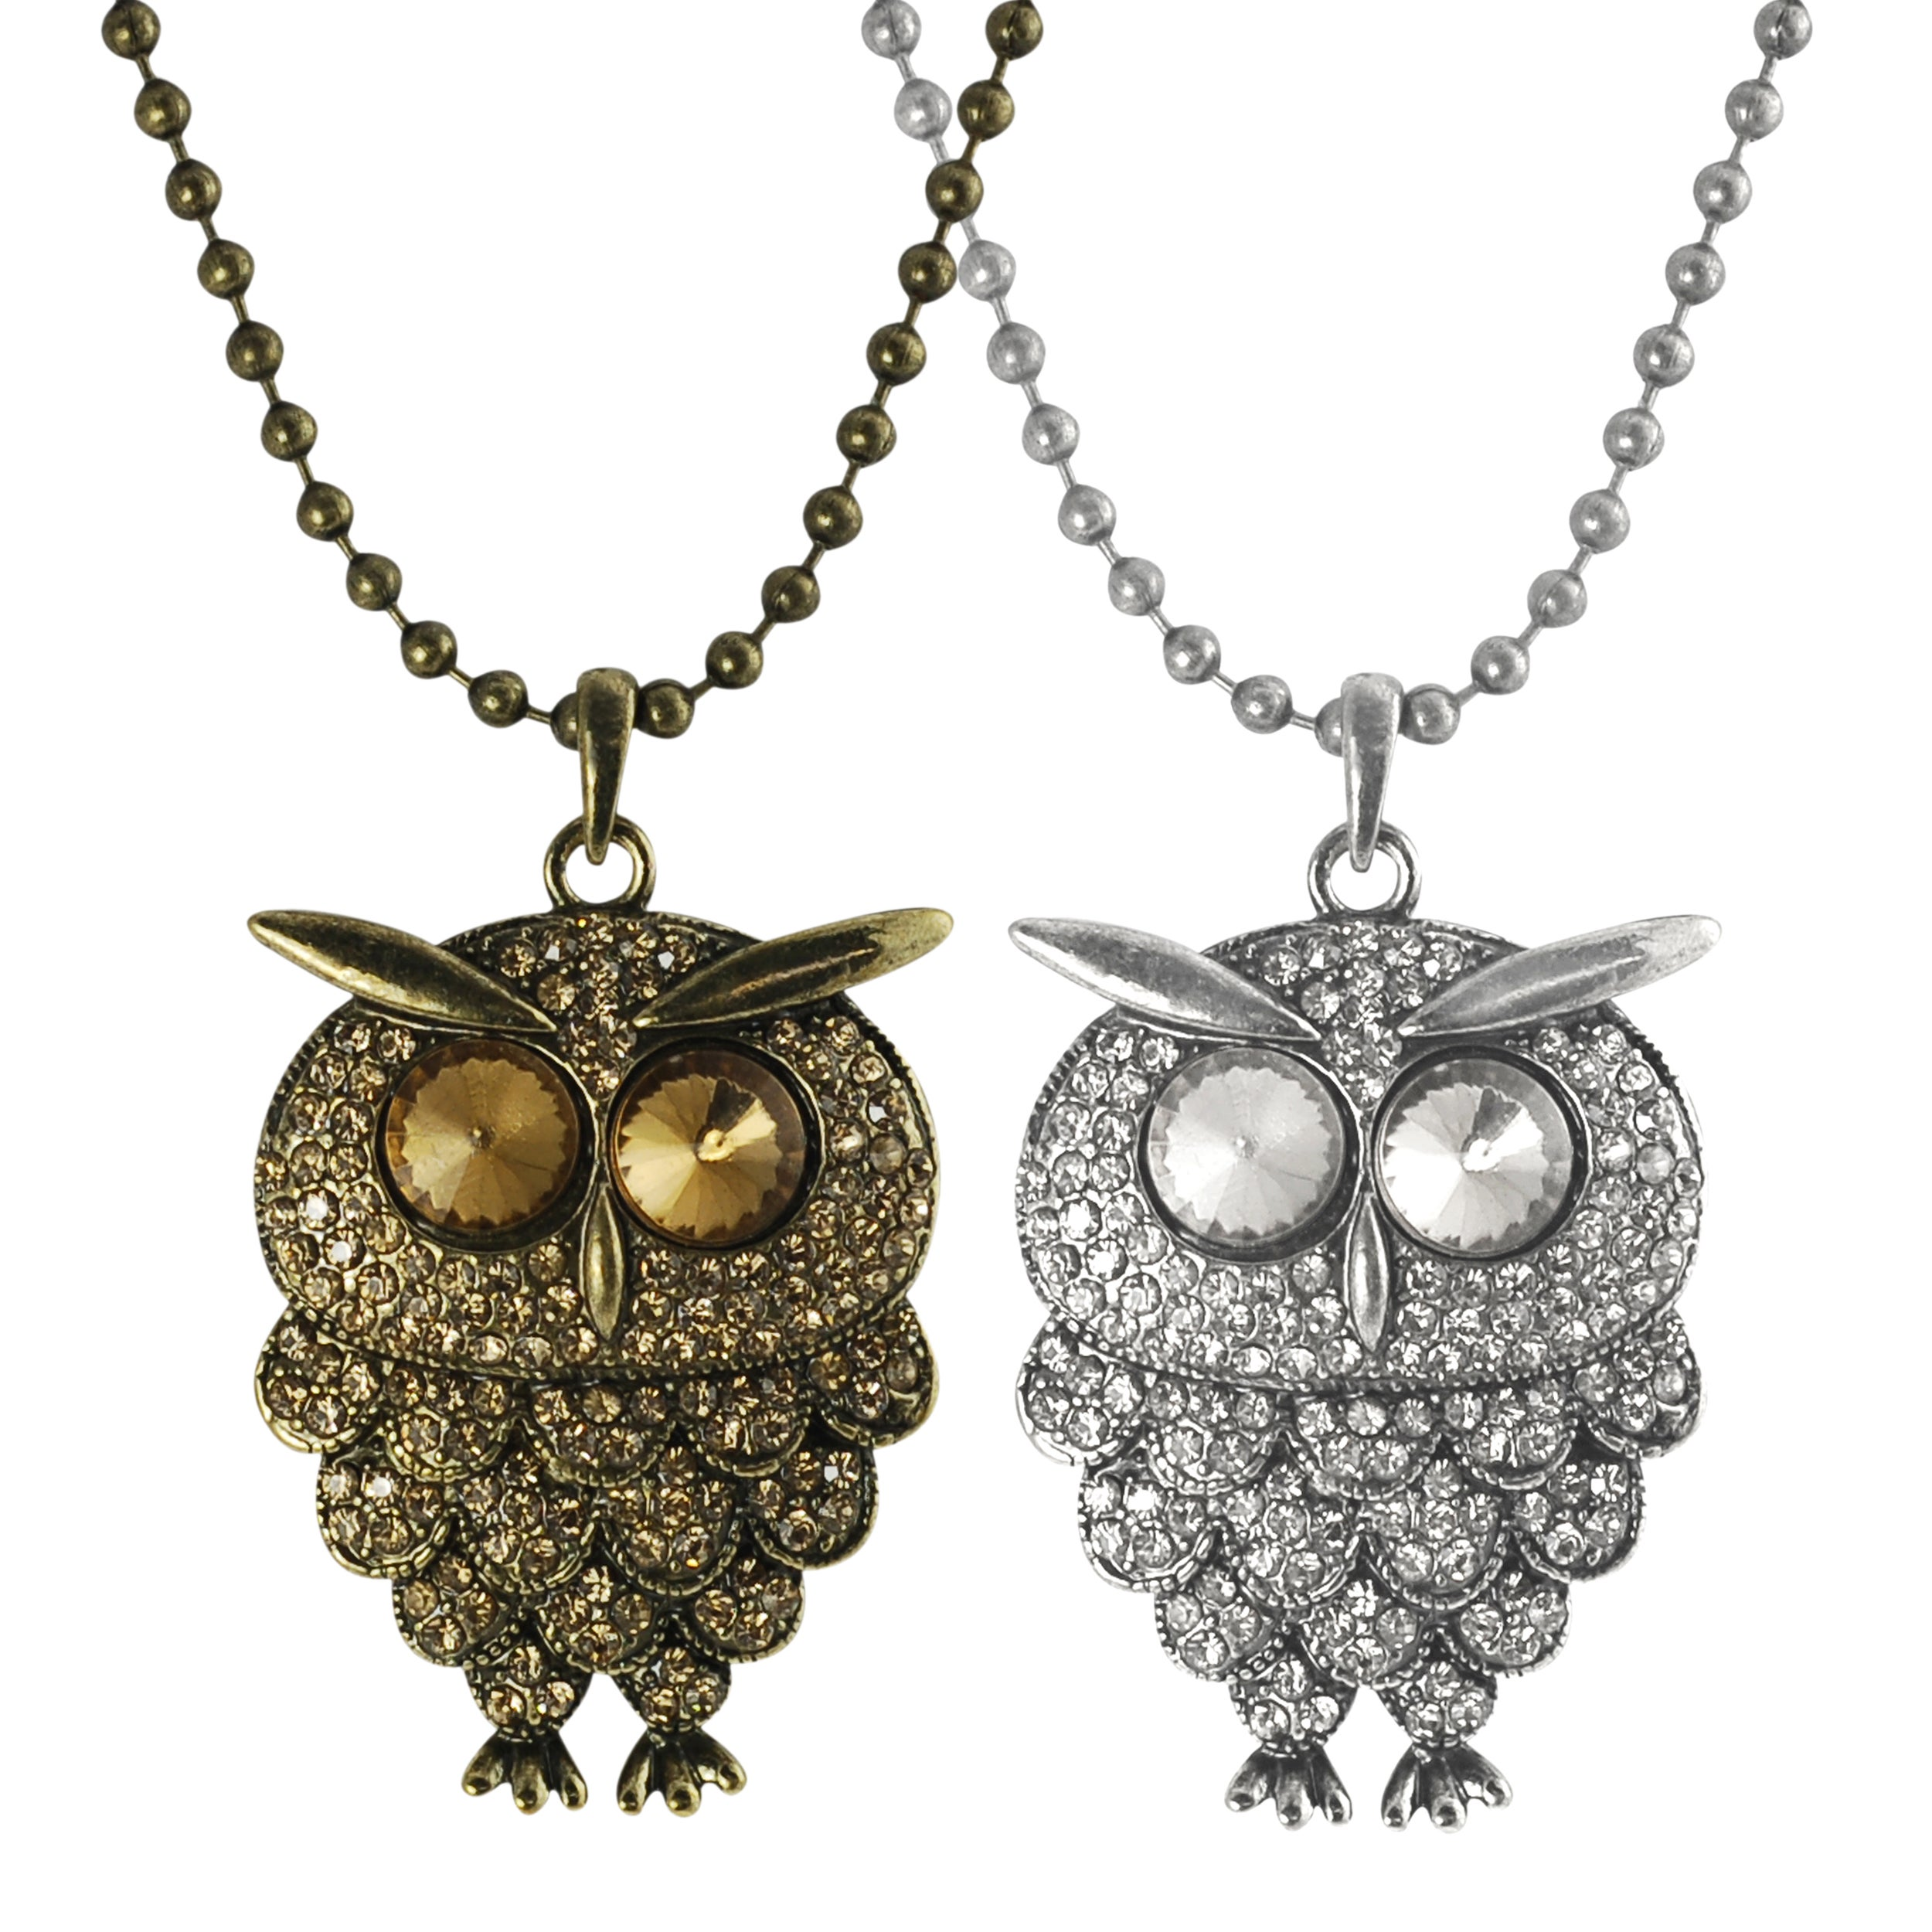 Journee Collection Base Metal Acrylic Stone Owl Necklace